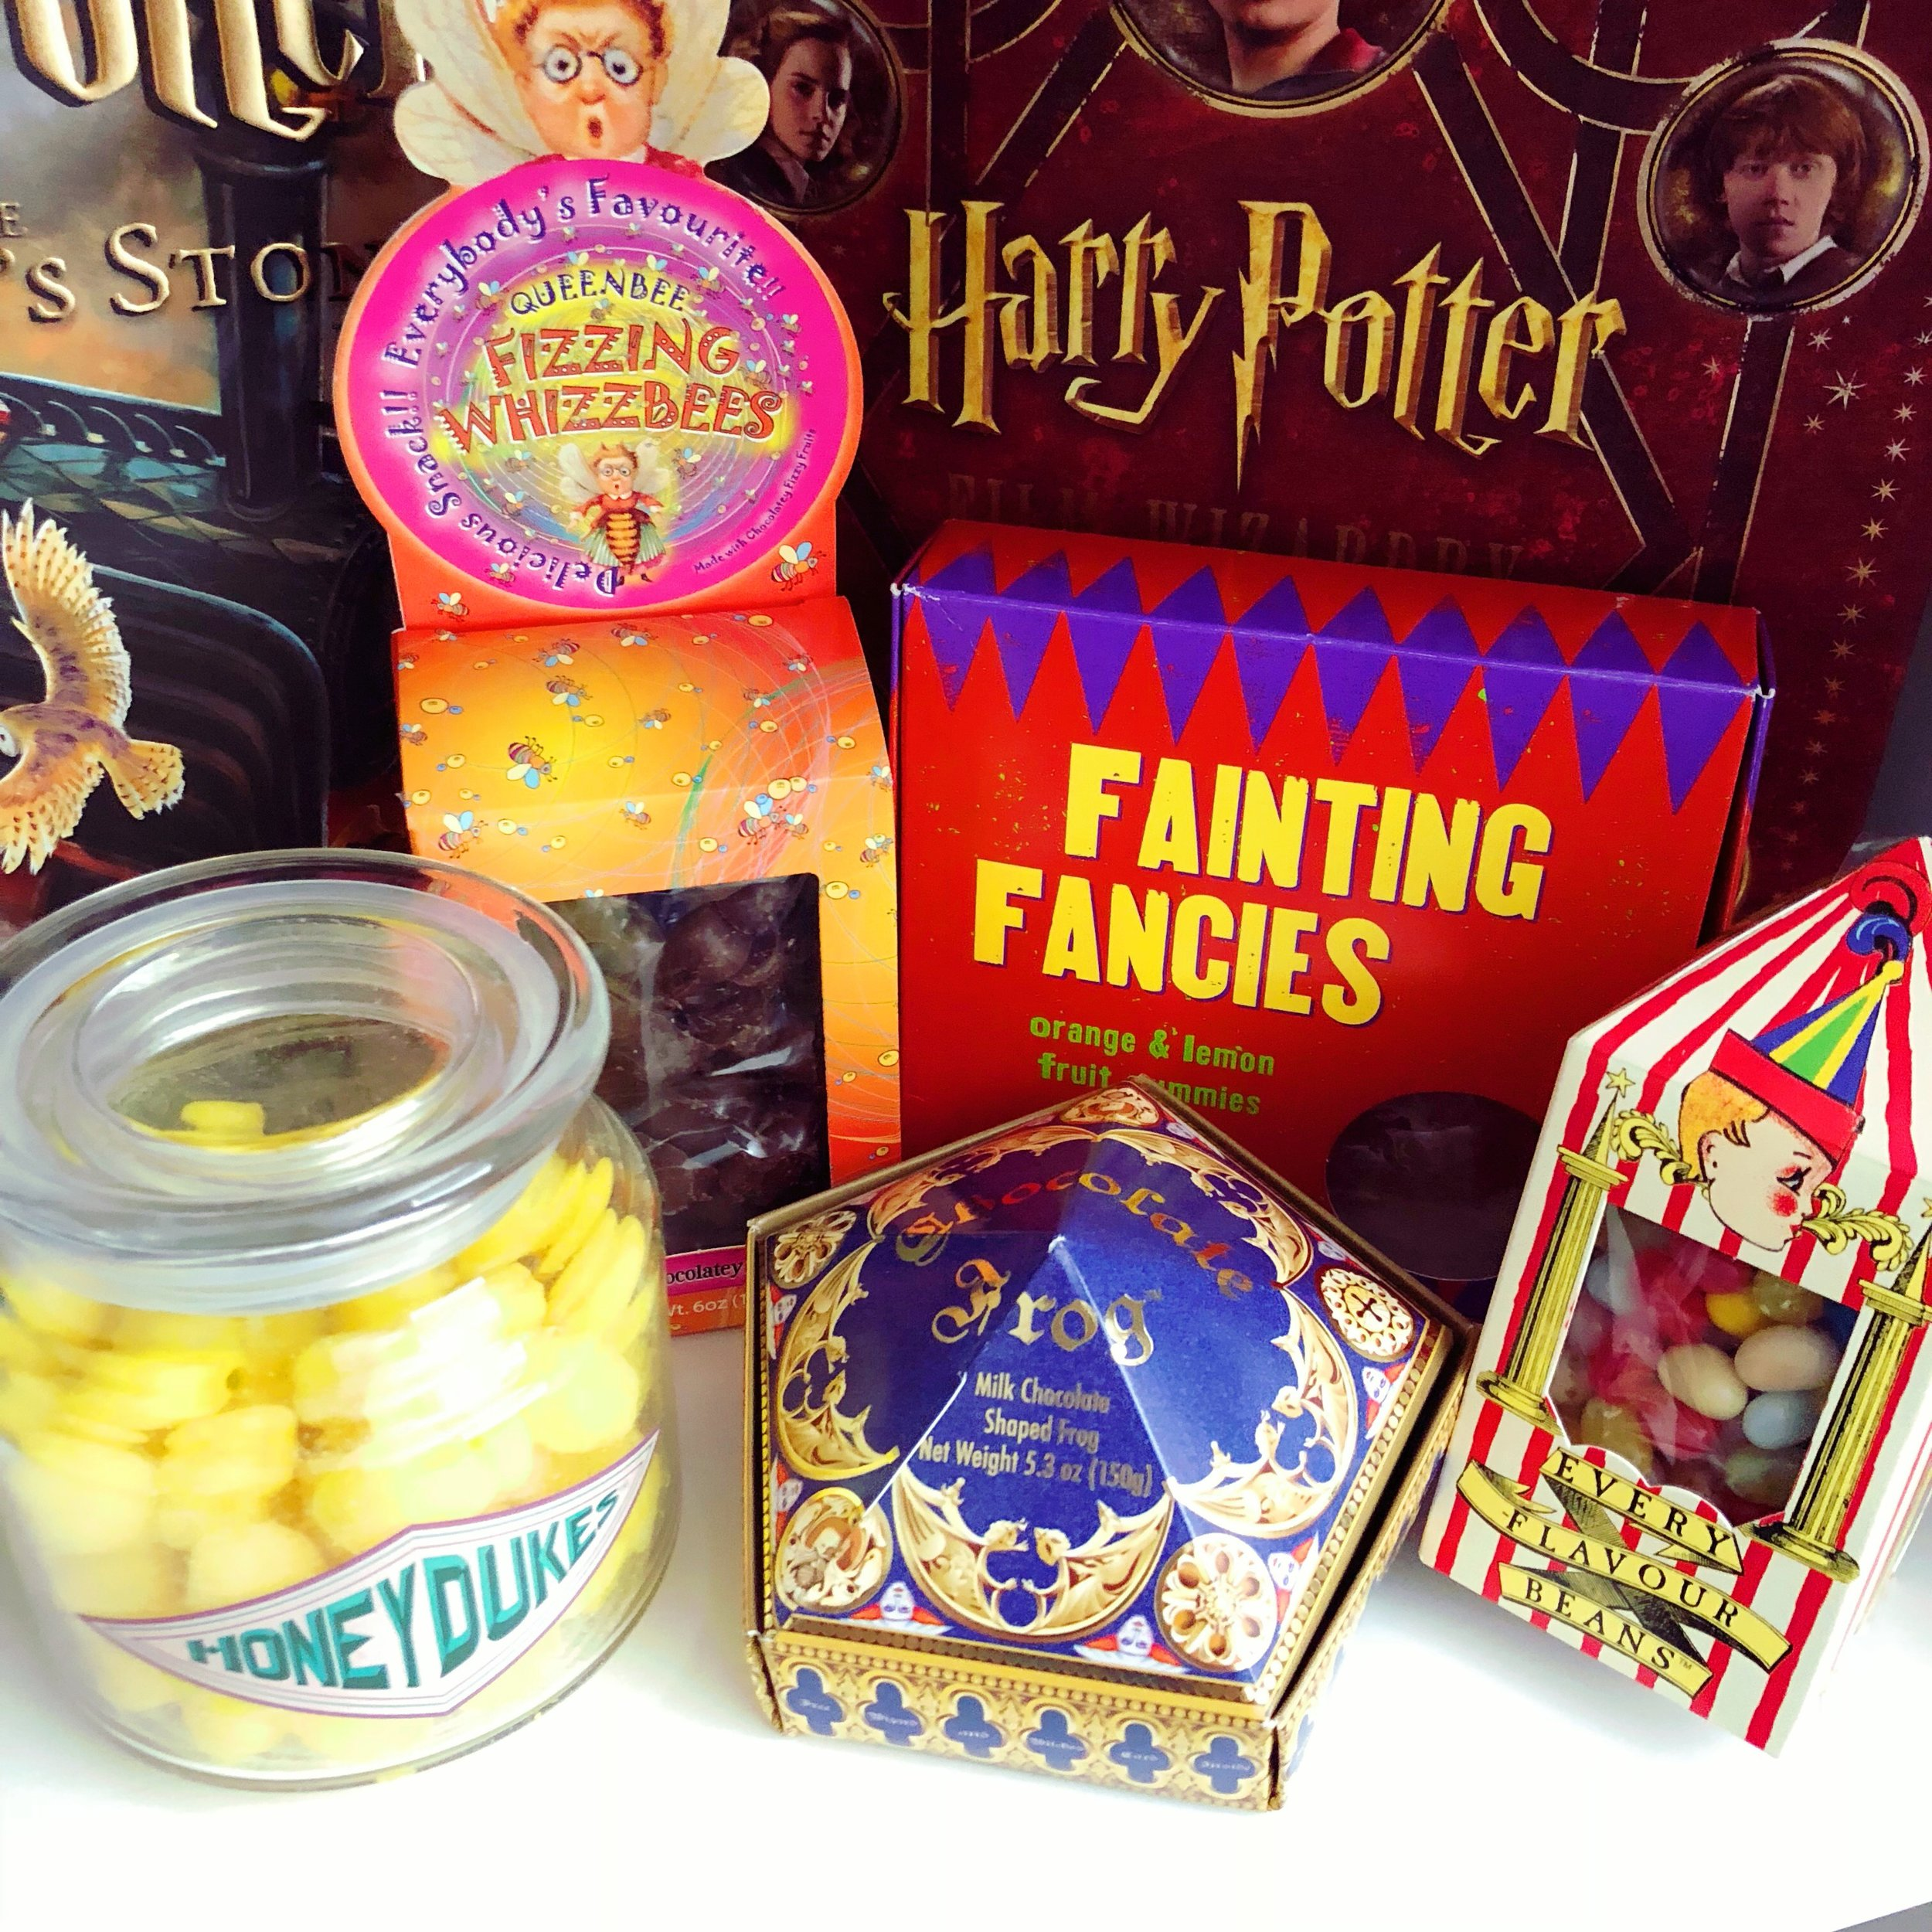 Debonair Candy At Wizarding World Harry Potter Fandom Harry Potter Candy Ideas Harry Potter Candy Near Me nice food Harry Potter Candy